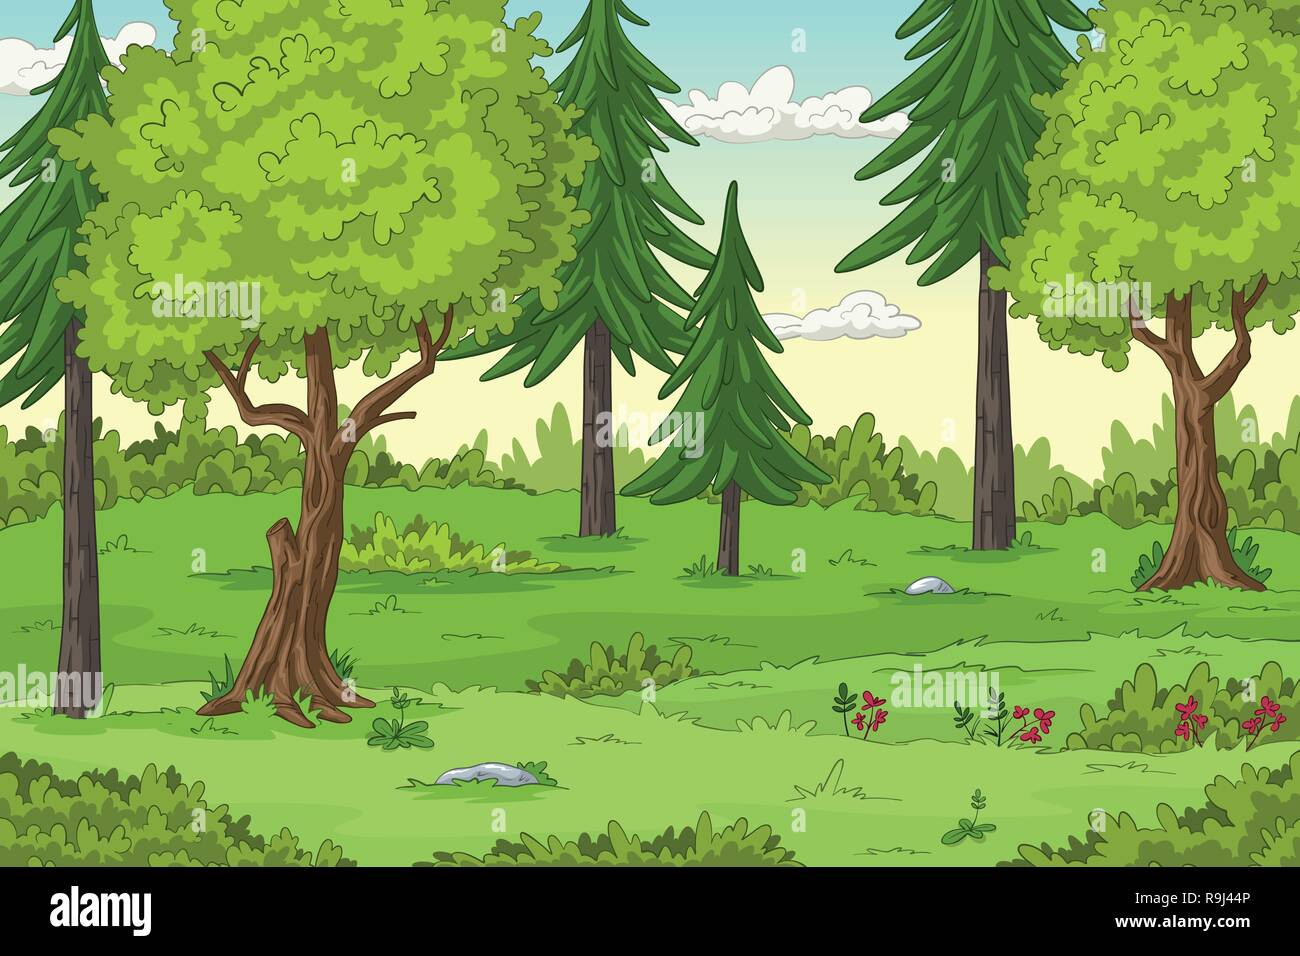 Forest Landscape With Trees Hand Draw Illustration Stock Vector Image Art Alamy